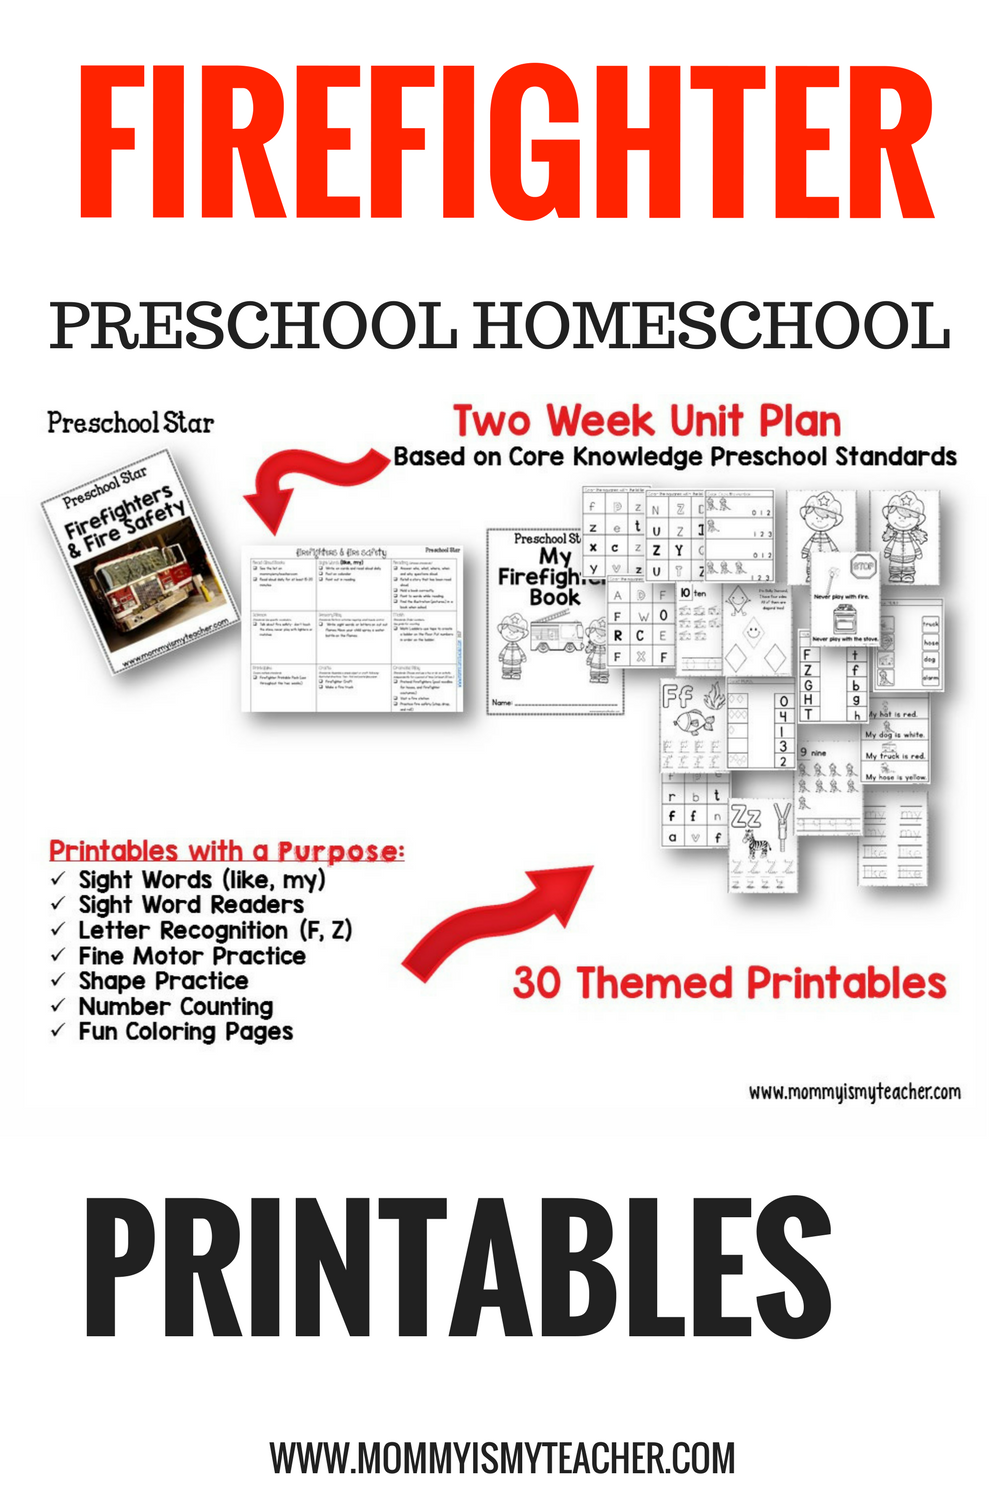 firefighter preschool kindergarten homeschool printables.png